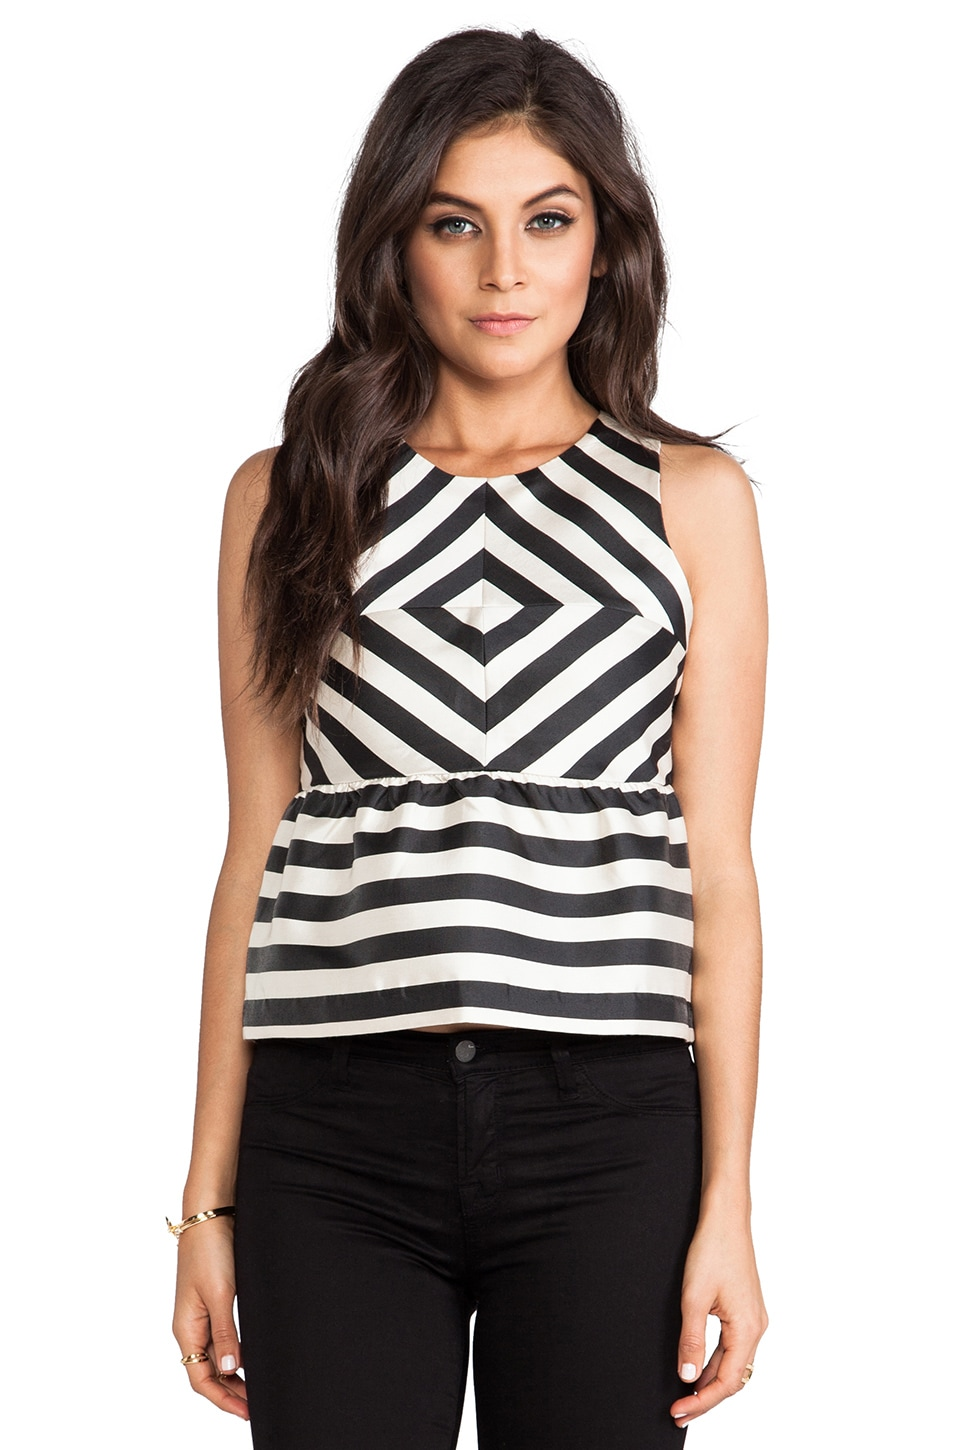 Dolce Vita Lysia Silky Stripes Top in Black/White